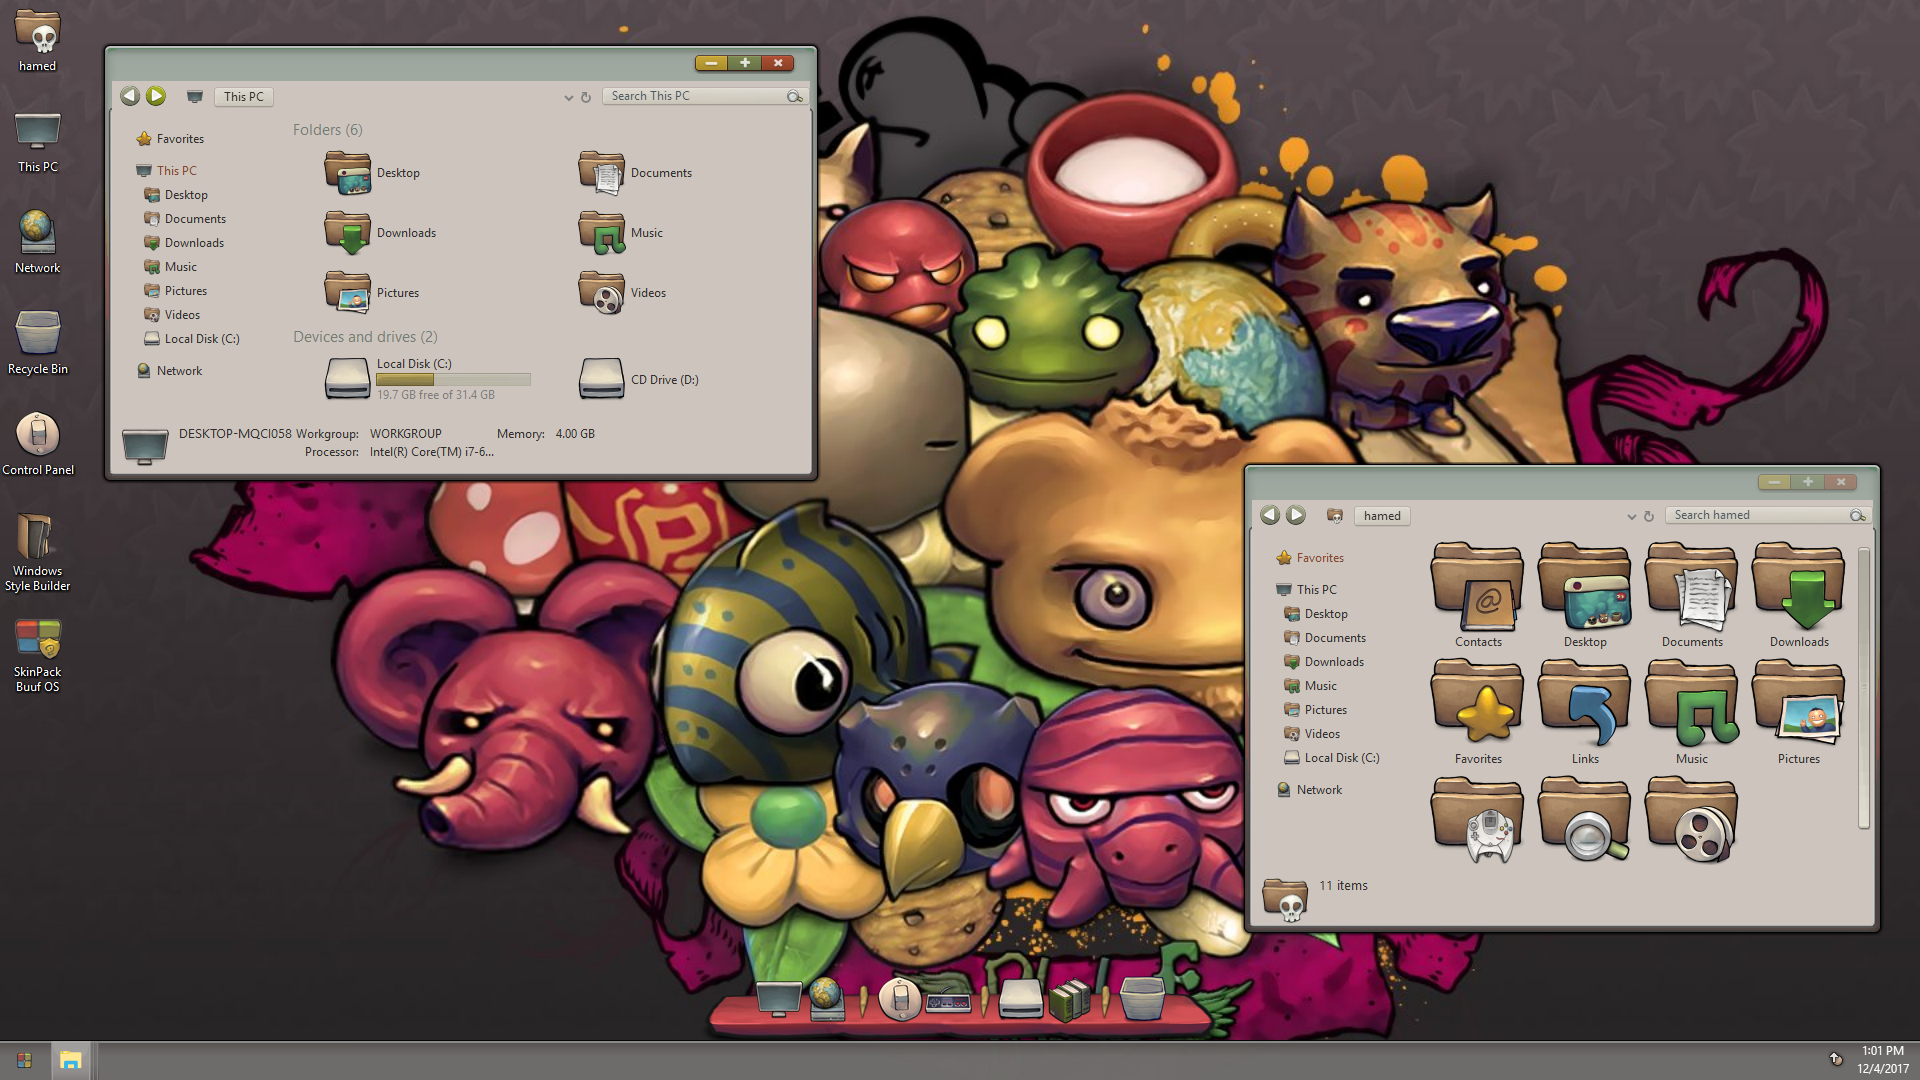 Christmas IconPack for Win7/8/8.1/10